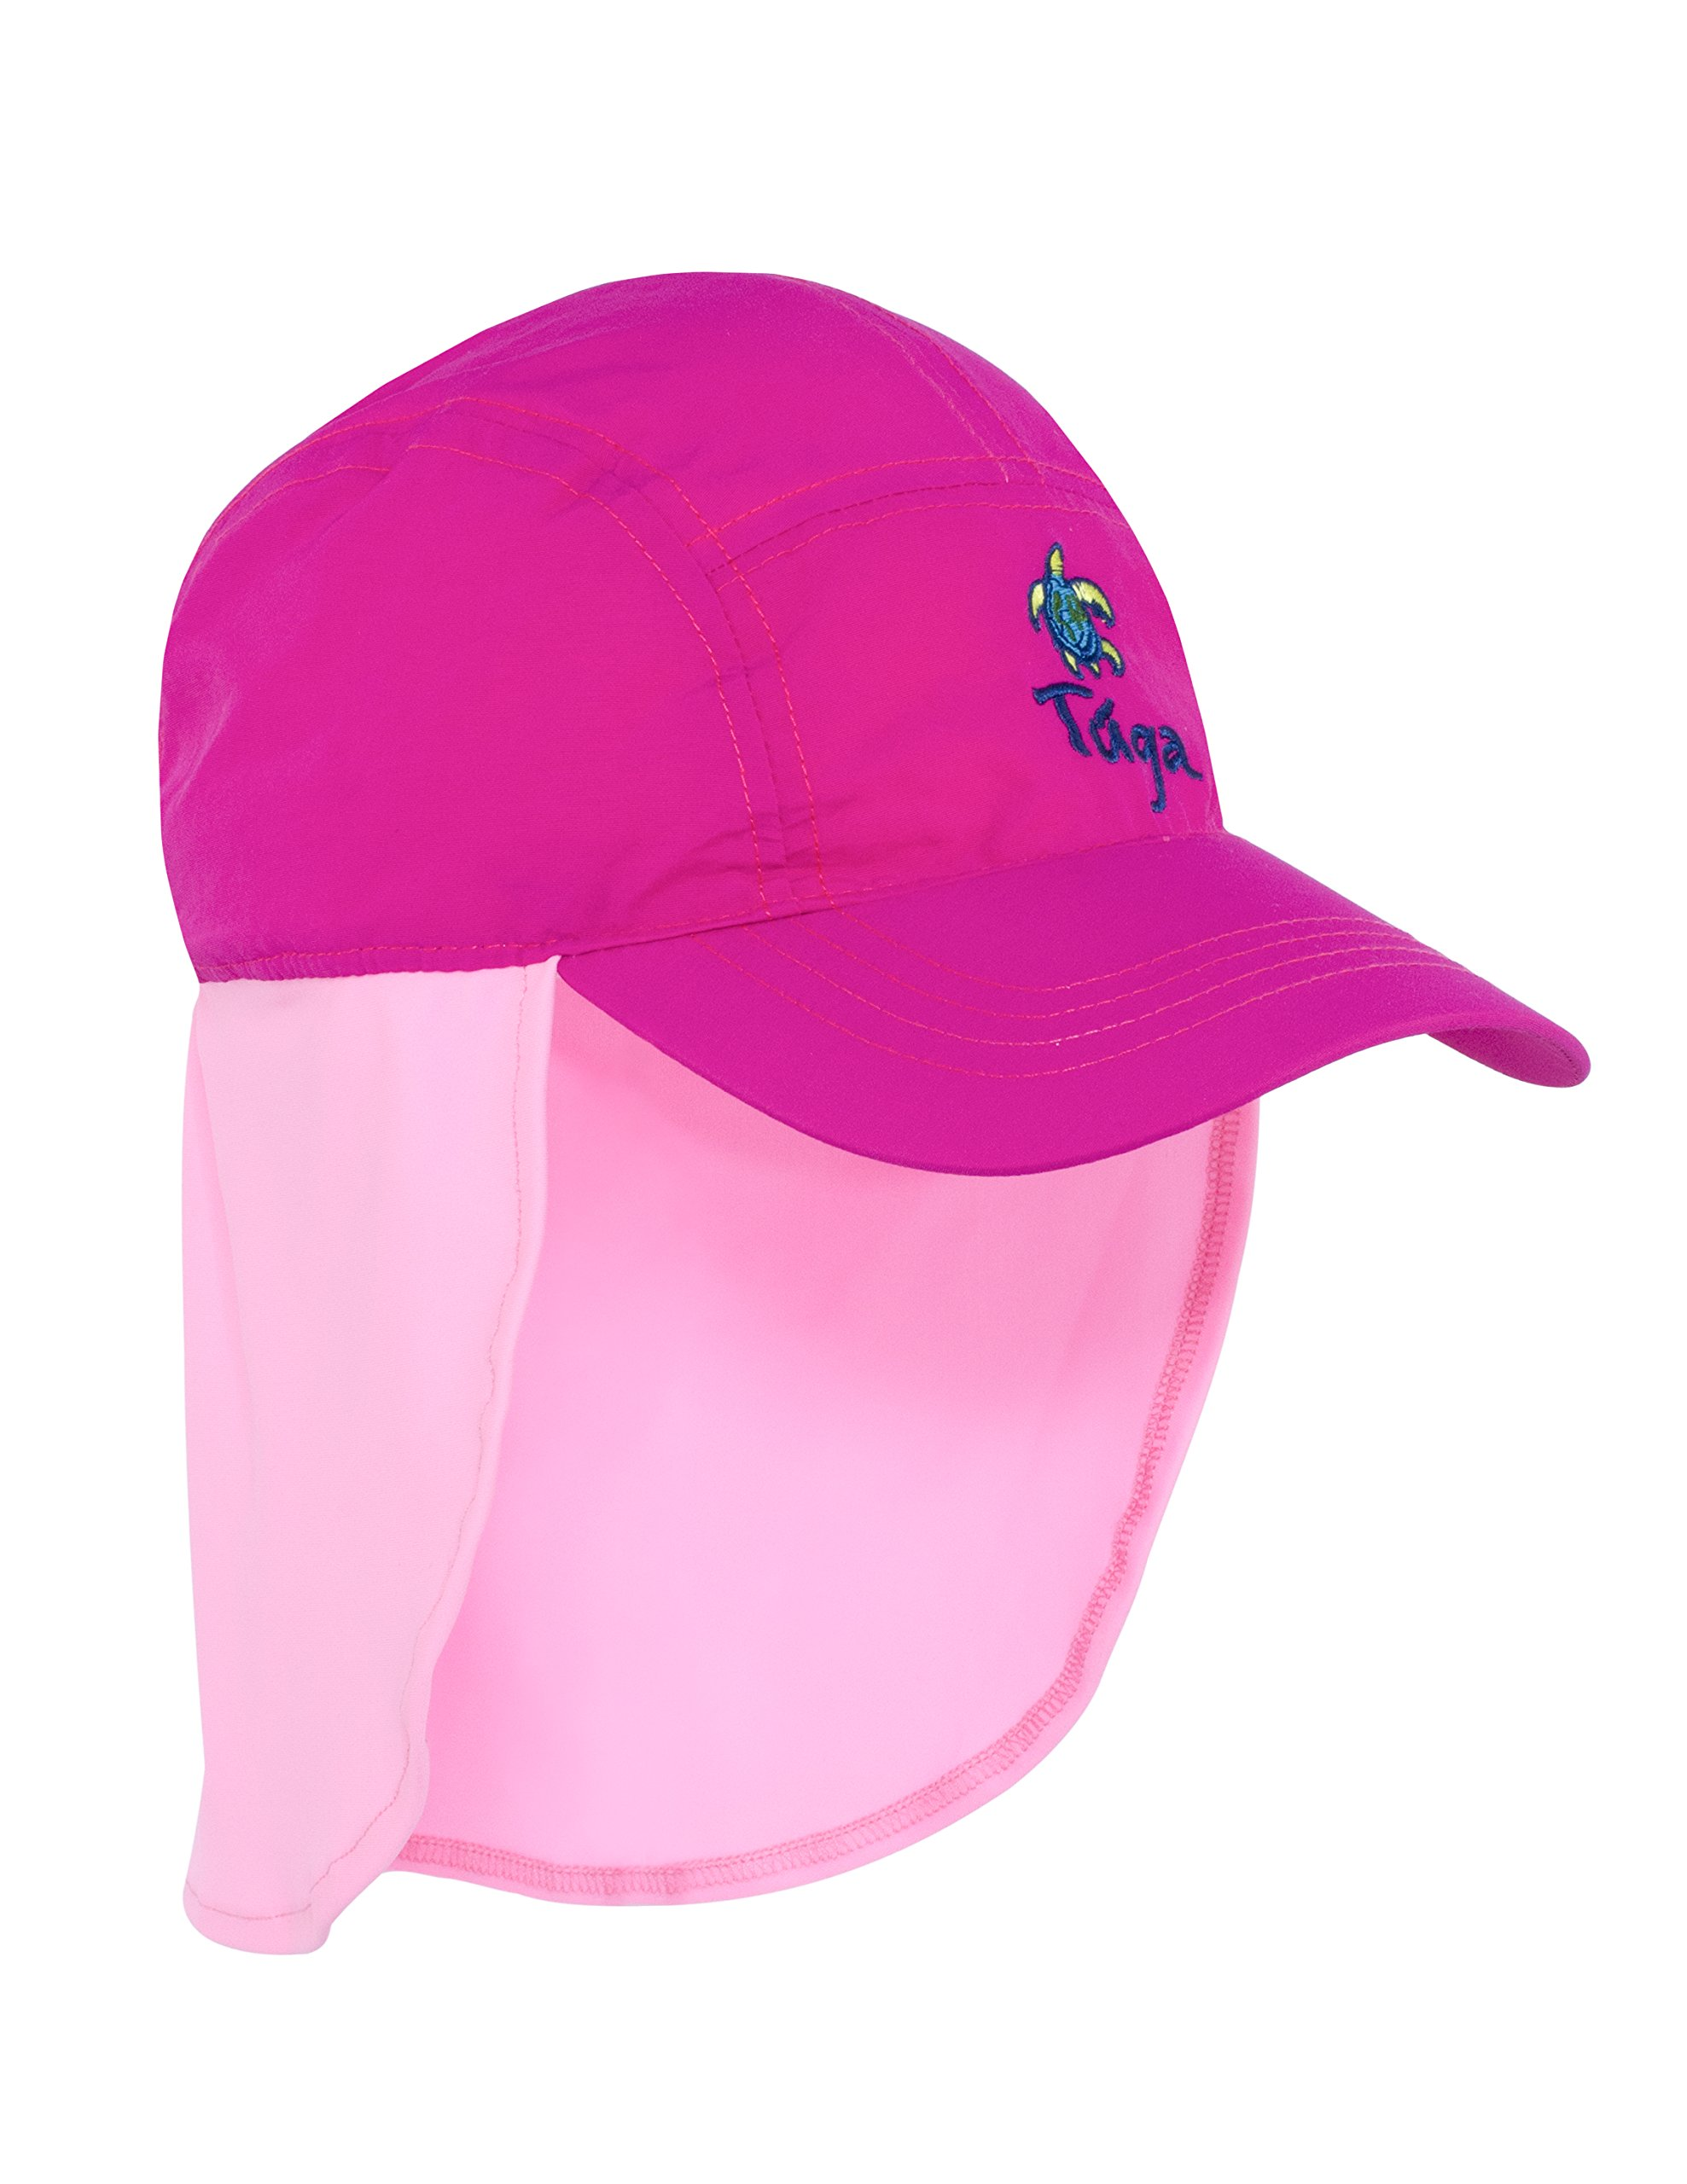 Tuga Girls Flap Hat (UPF 50+), Fuchsia/Raspberry, Large